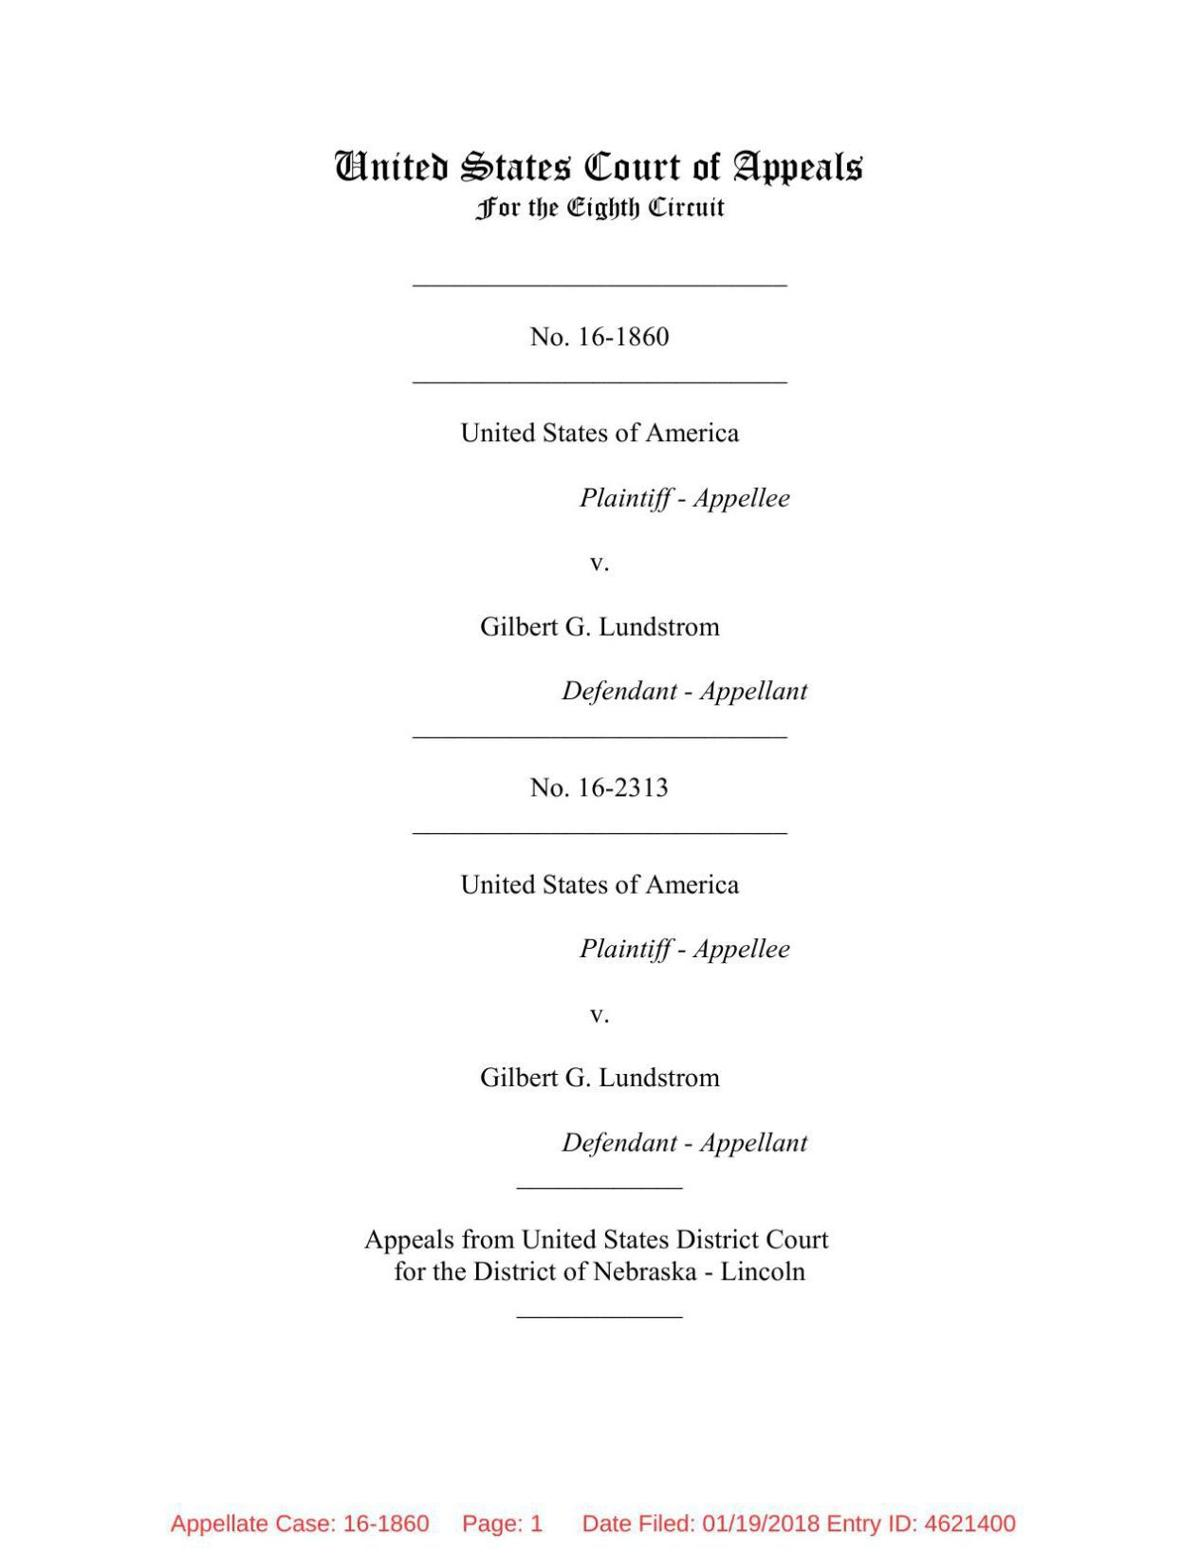 8th Circuit opinion on 'Gil' Lundstrom